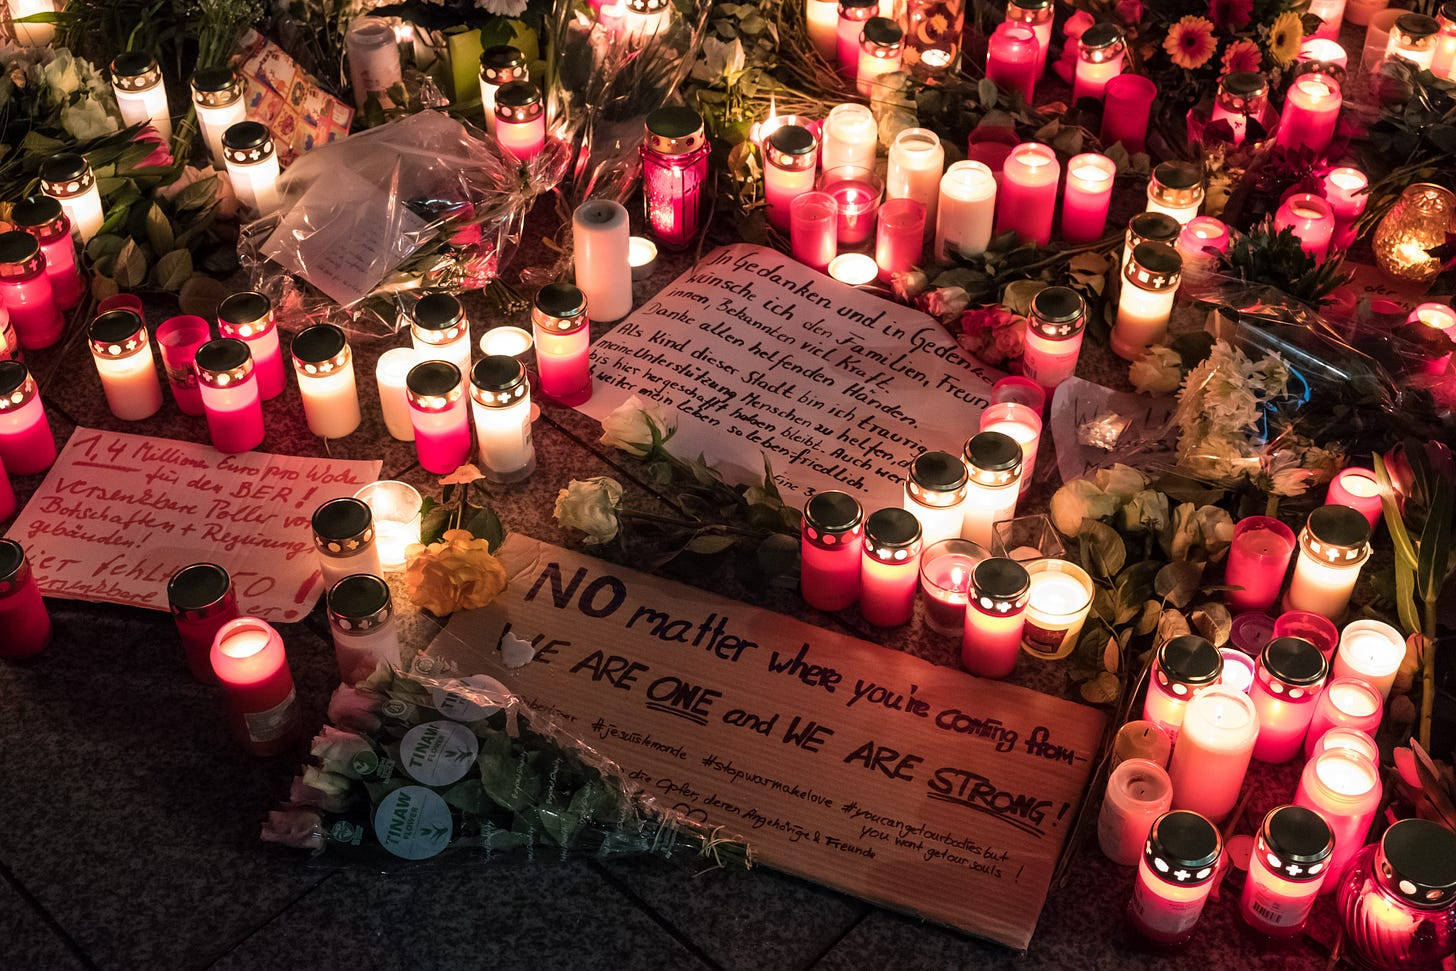 DECEMBER 21, 2016 - BERLIN: flowers and candles after the terror attack on the christmas holiday market a day before, Breitscheidplatz © hanohiki / shutterstock